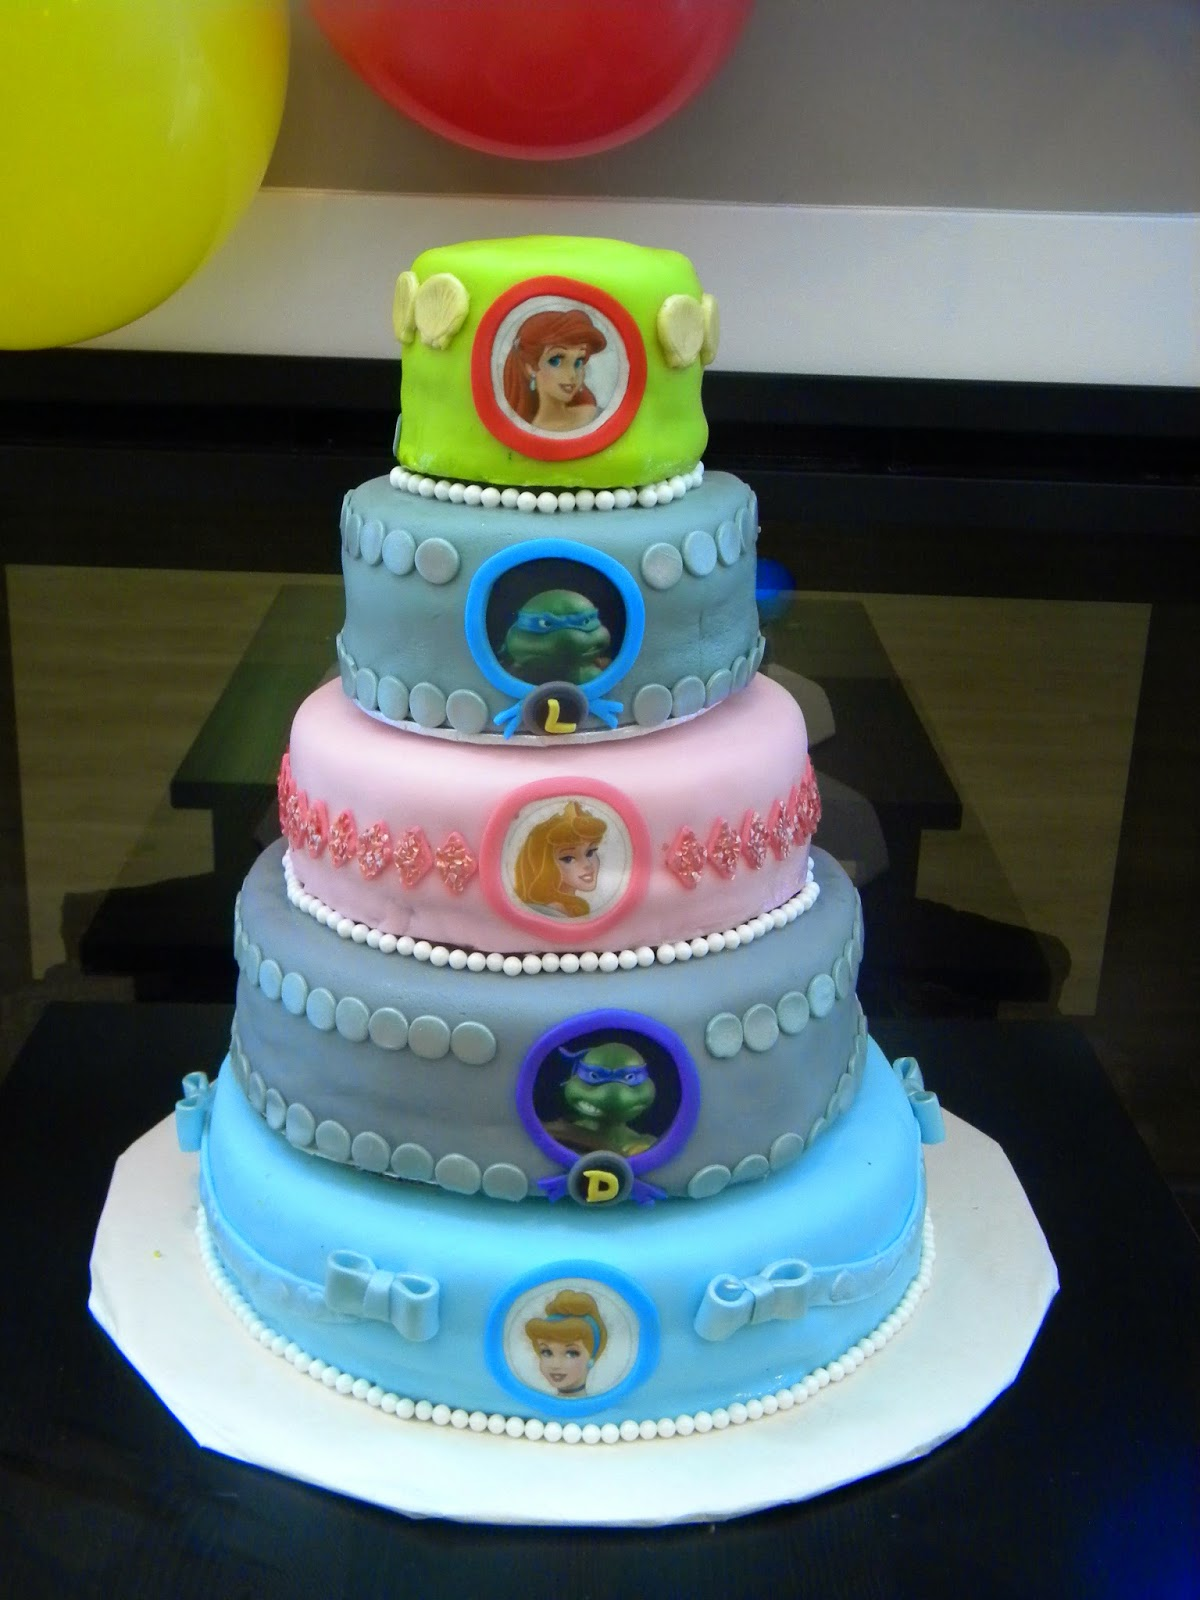 Oh And One Of Them Dreamed A 5 Tier Birthday Cake As Well So Course The Princess Ninja Was Born